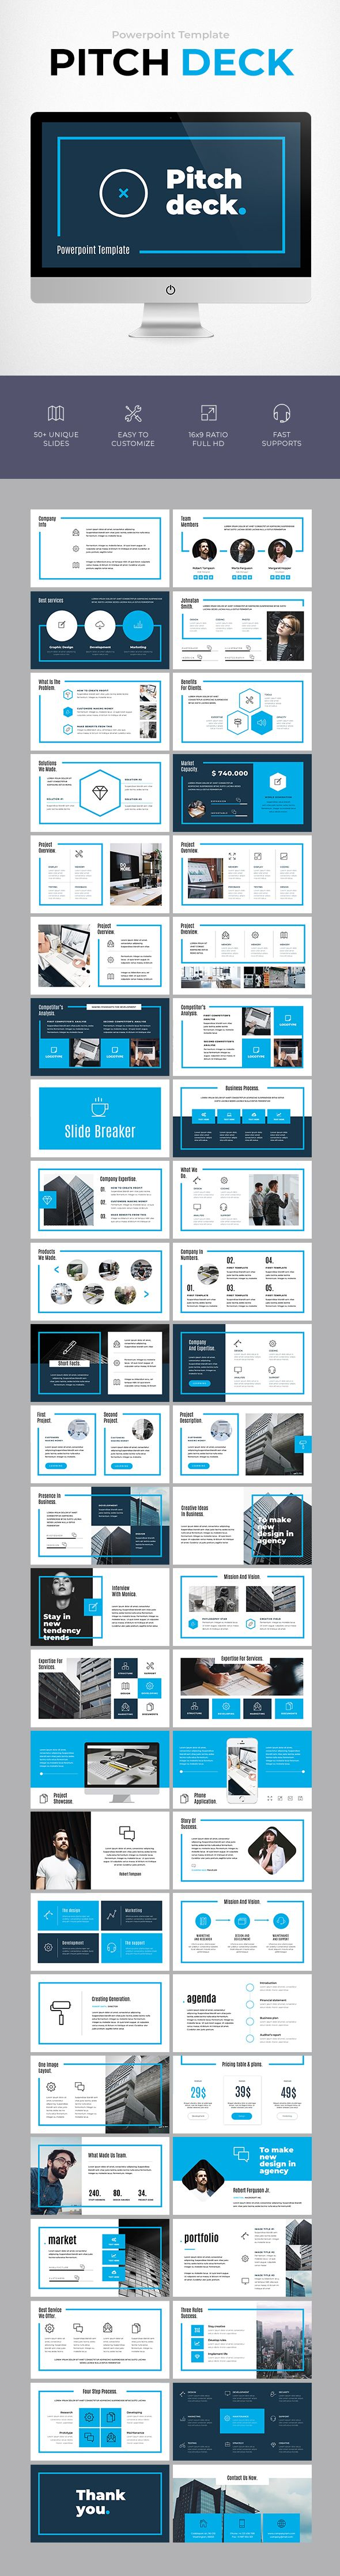 Pitch Deck Powerpoint Template - 50+ Unique Slides